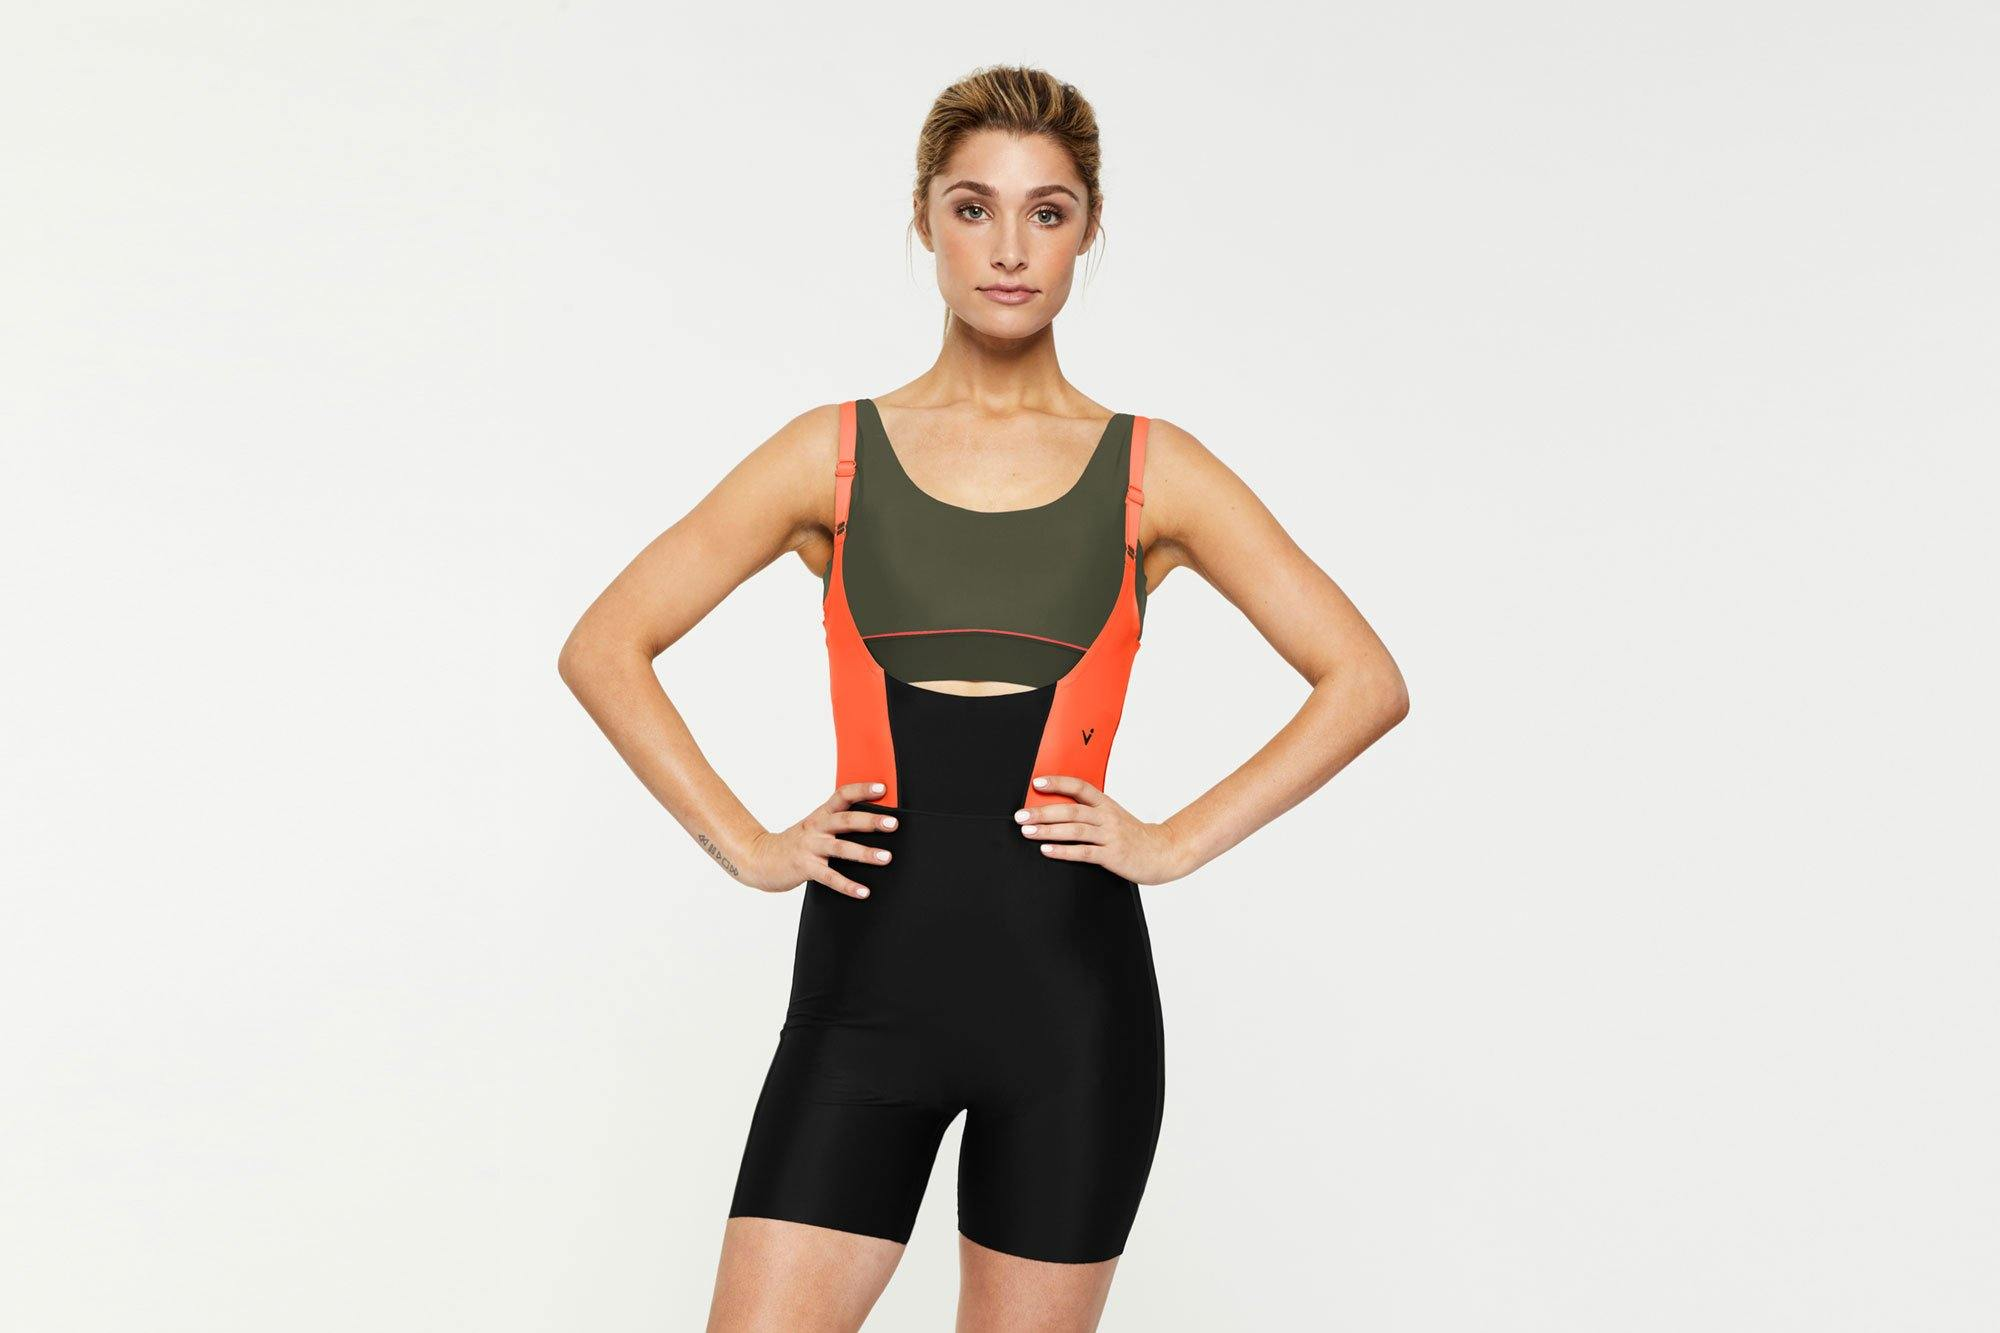 Sergeant Olive Pectoralis Olive bra top worn under the Rectus two way wear short core bodysuit, front view, great for pilates, barre and in-studio workouts